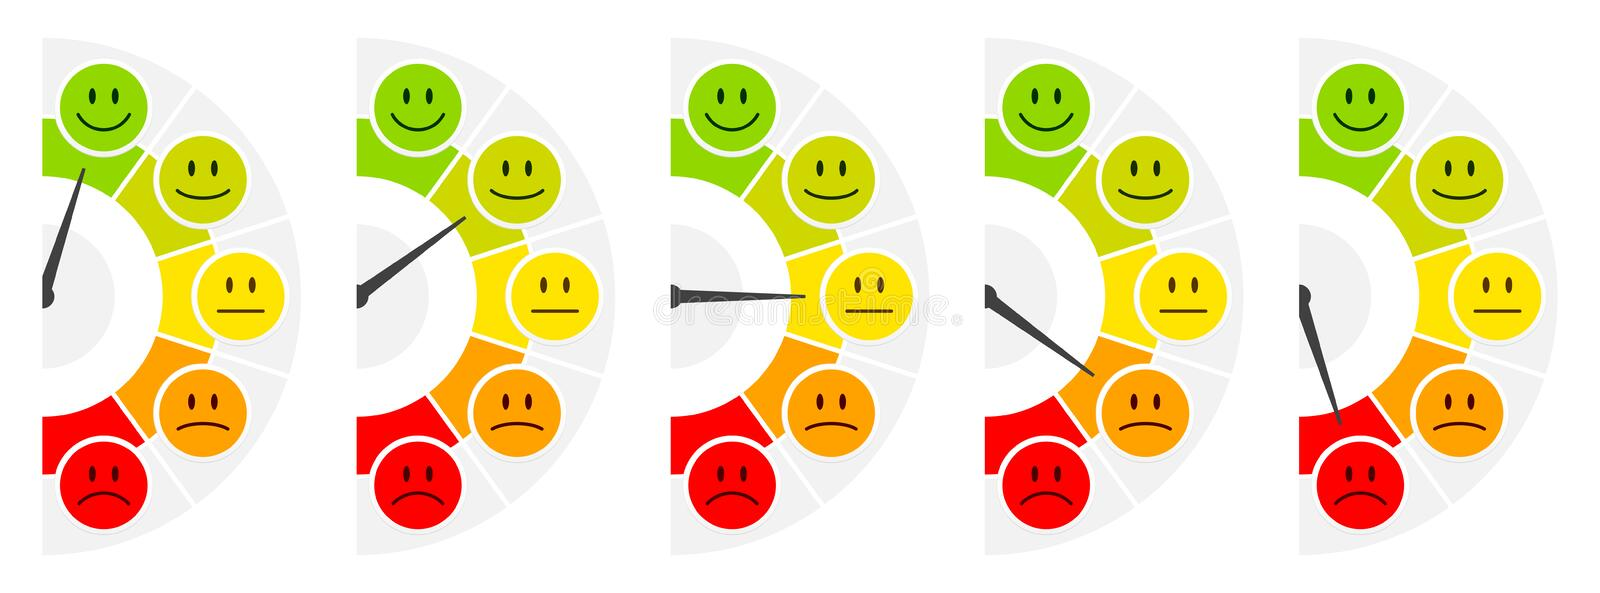 Five Faces Color Barometer Public Opinion Vertical Right Side. Collection Of Five Faces Color Barometer Public Opinion Vertical Right Side royalty free illustration